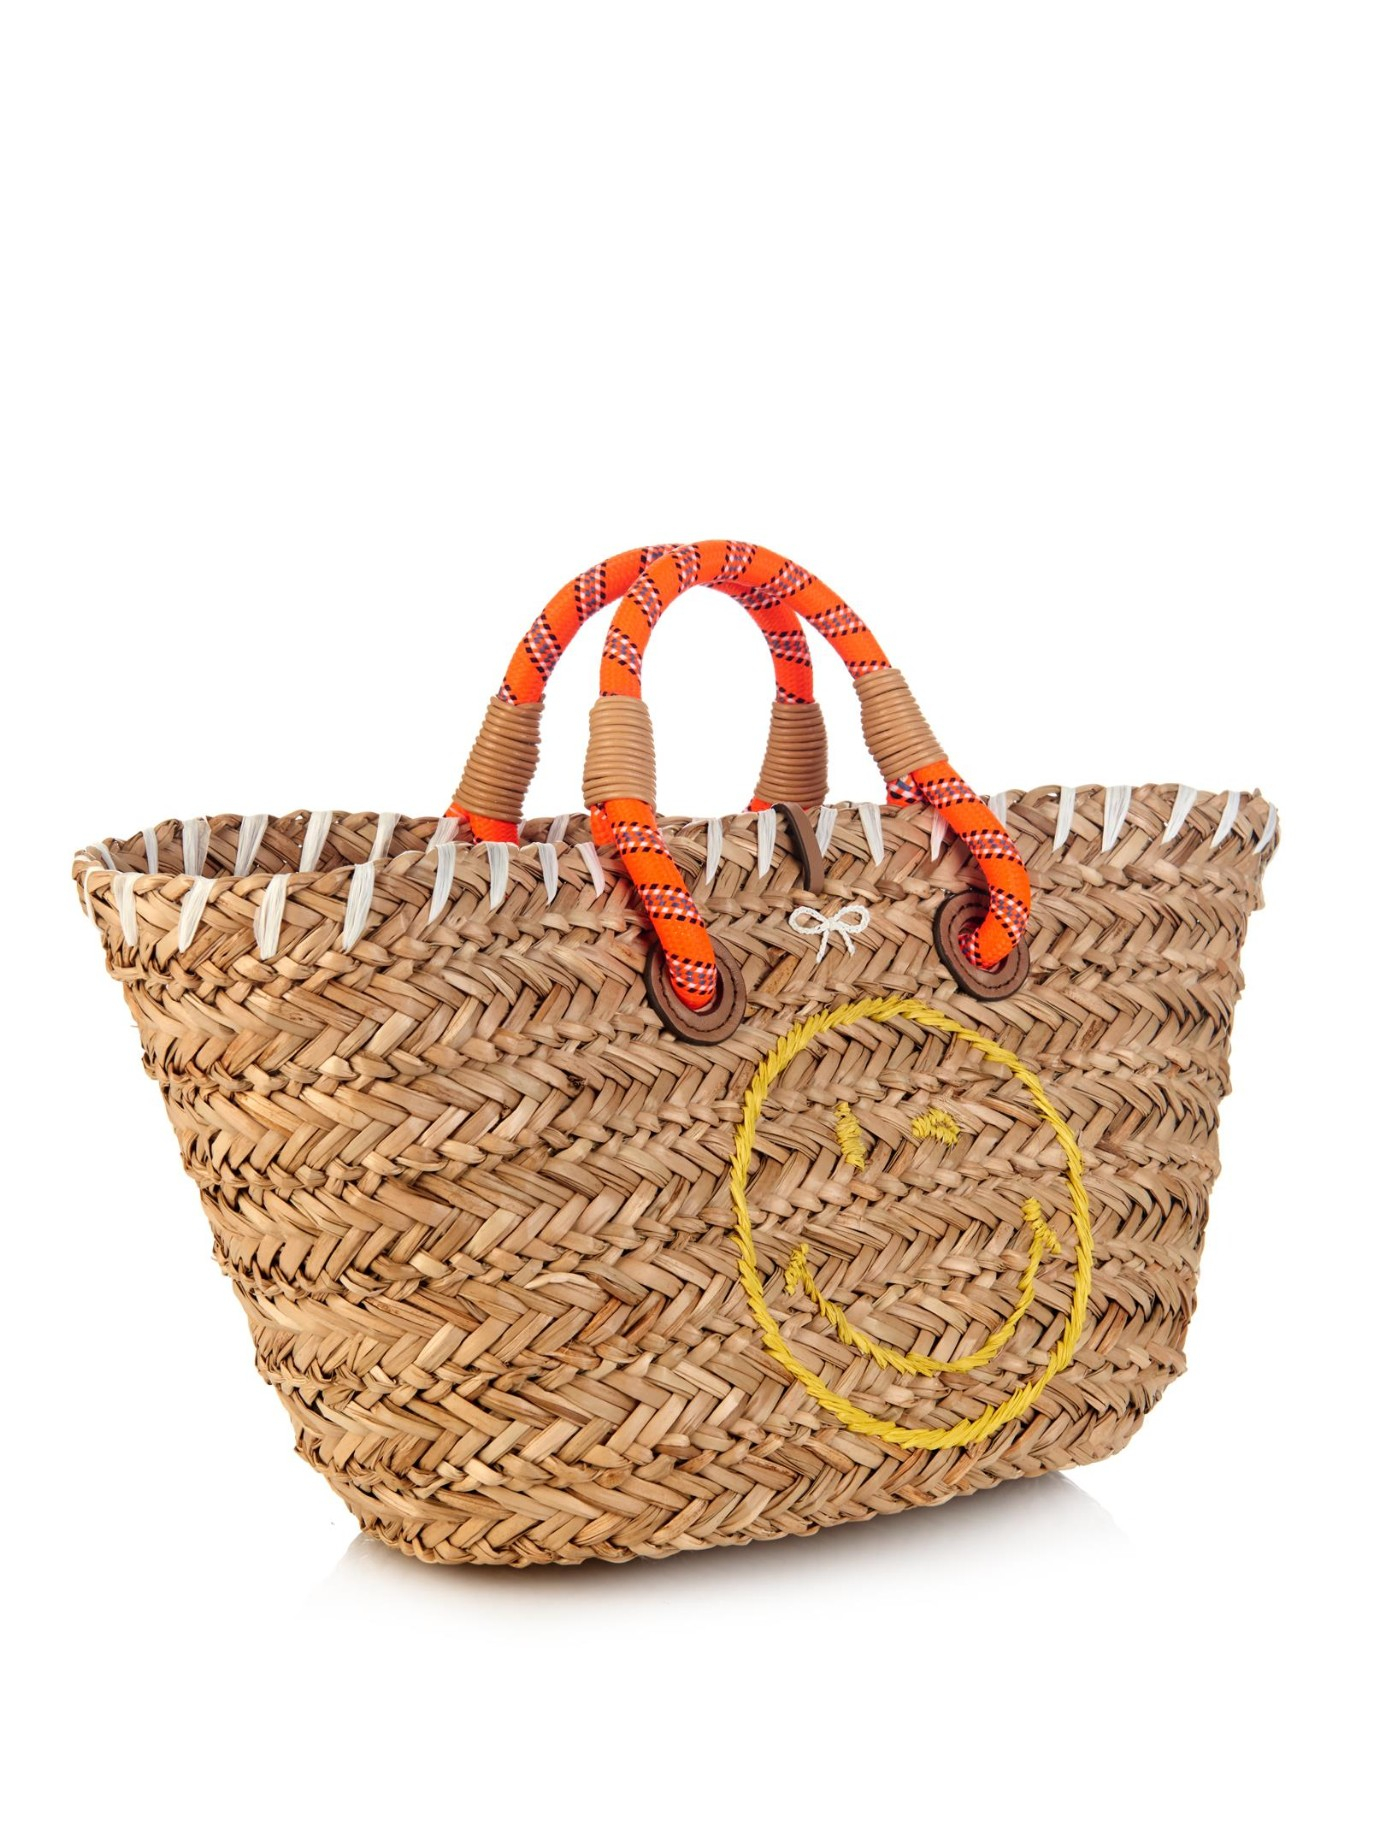 Anya hindmarch Wink Small Straw Beach Bag in Brown | Lyst